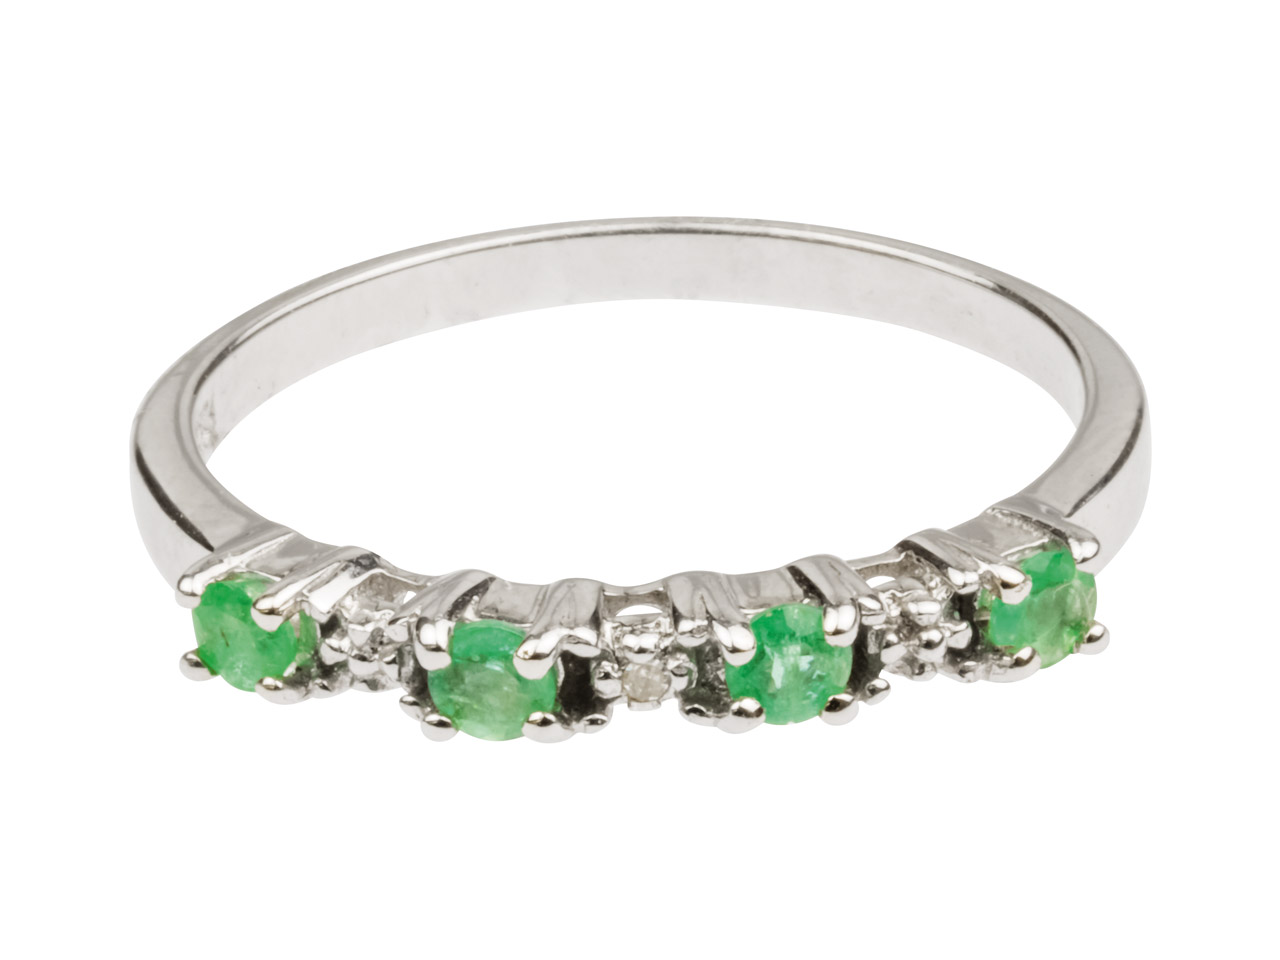 Sterling Silver Half Eternity Ring With Emerald And Diamond, Size P